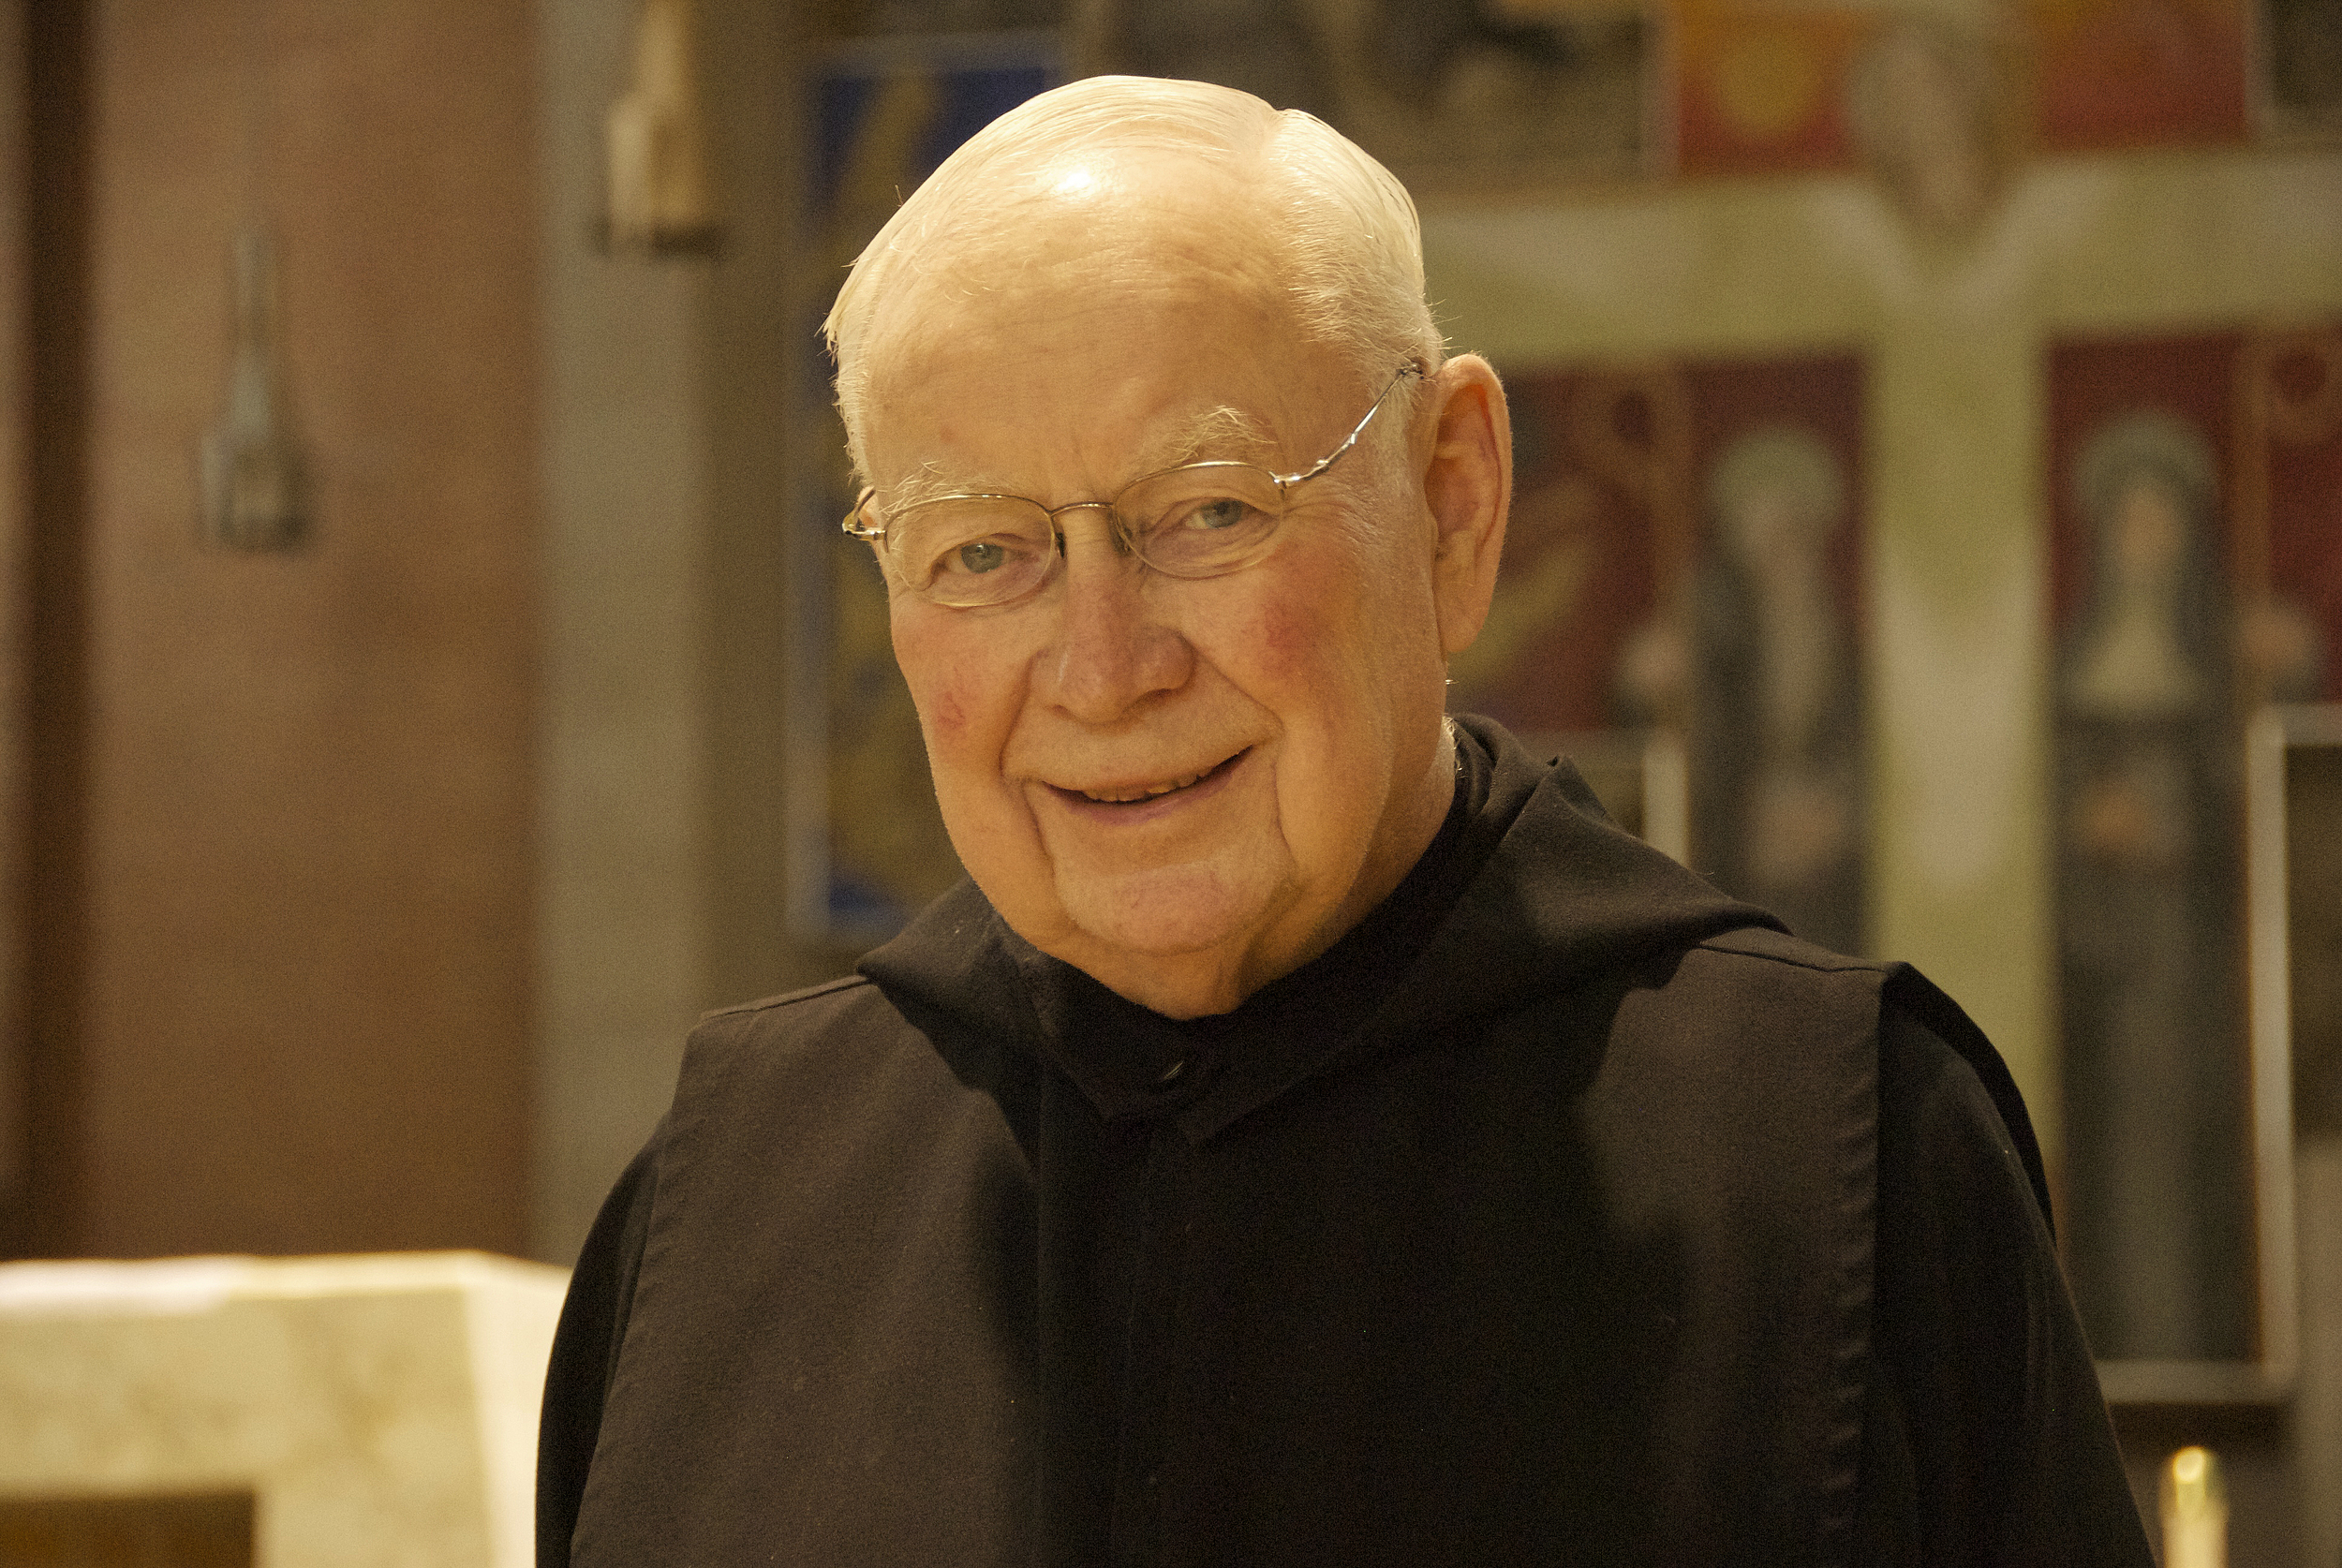 Fr. Denis Meade - 66 Years